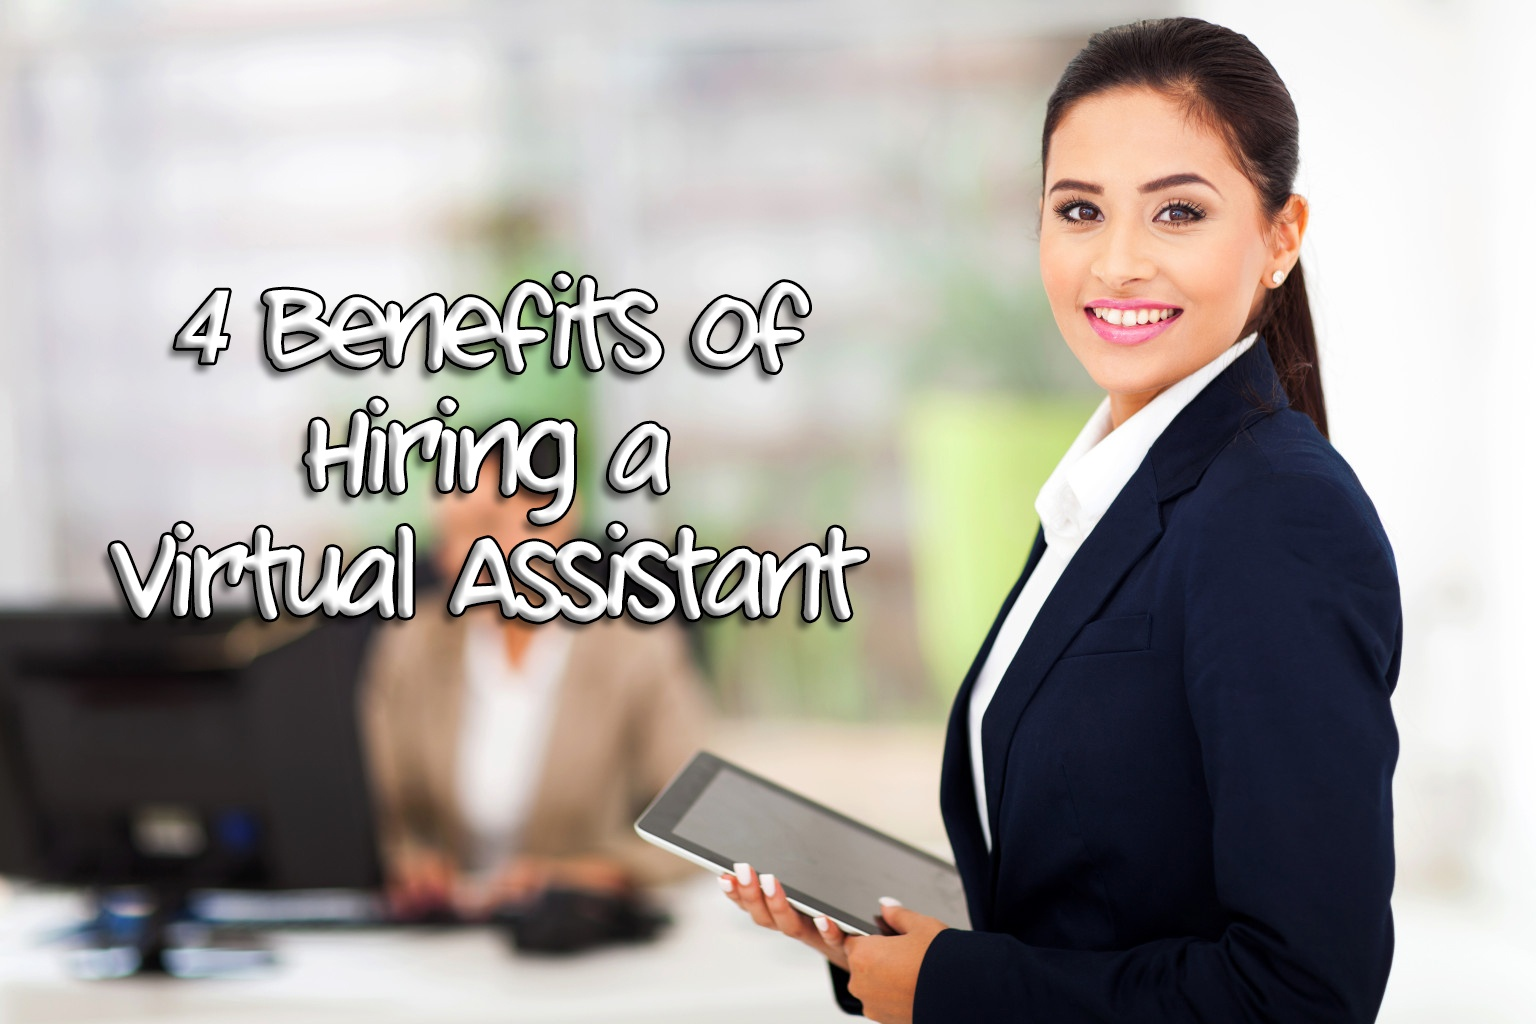 4 Benefits of Hiring a Virtual Assistant